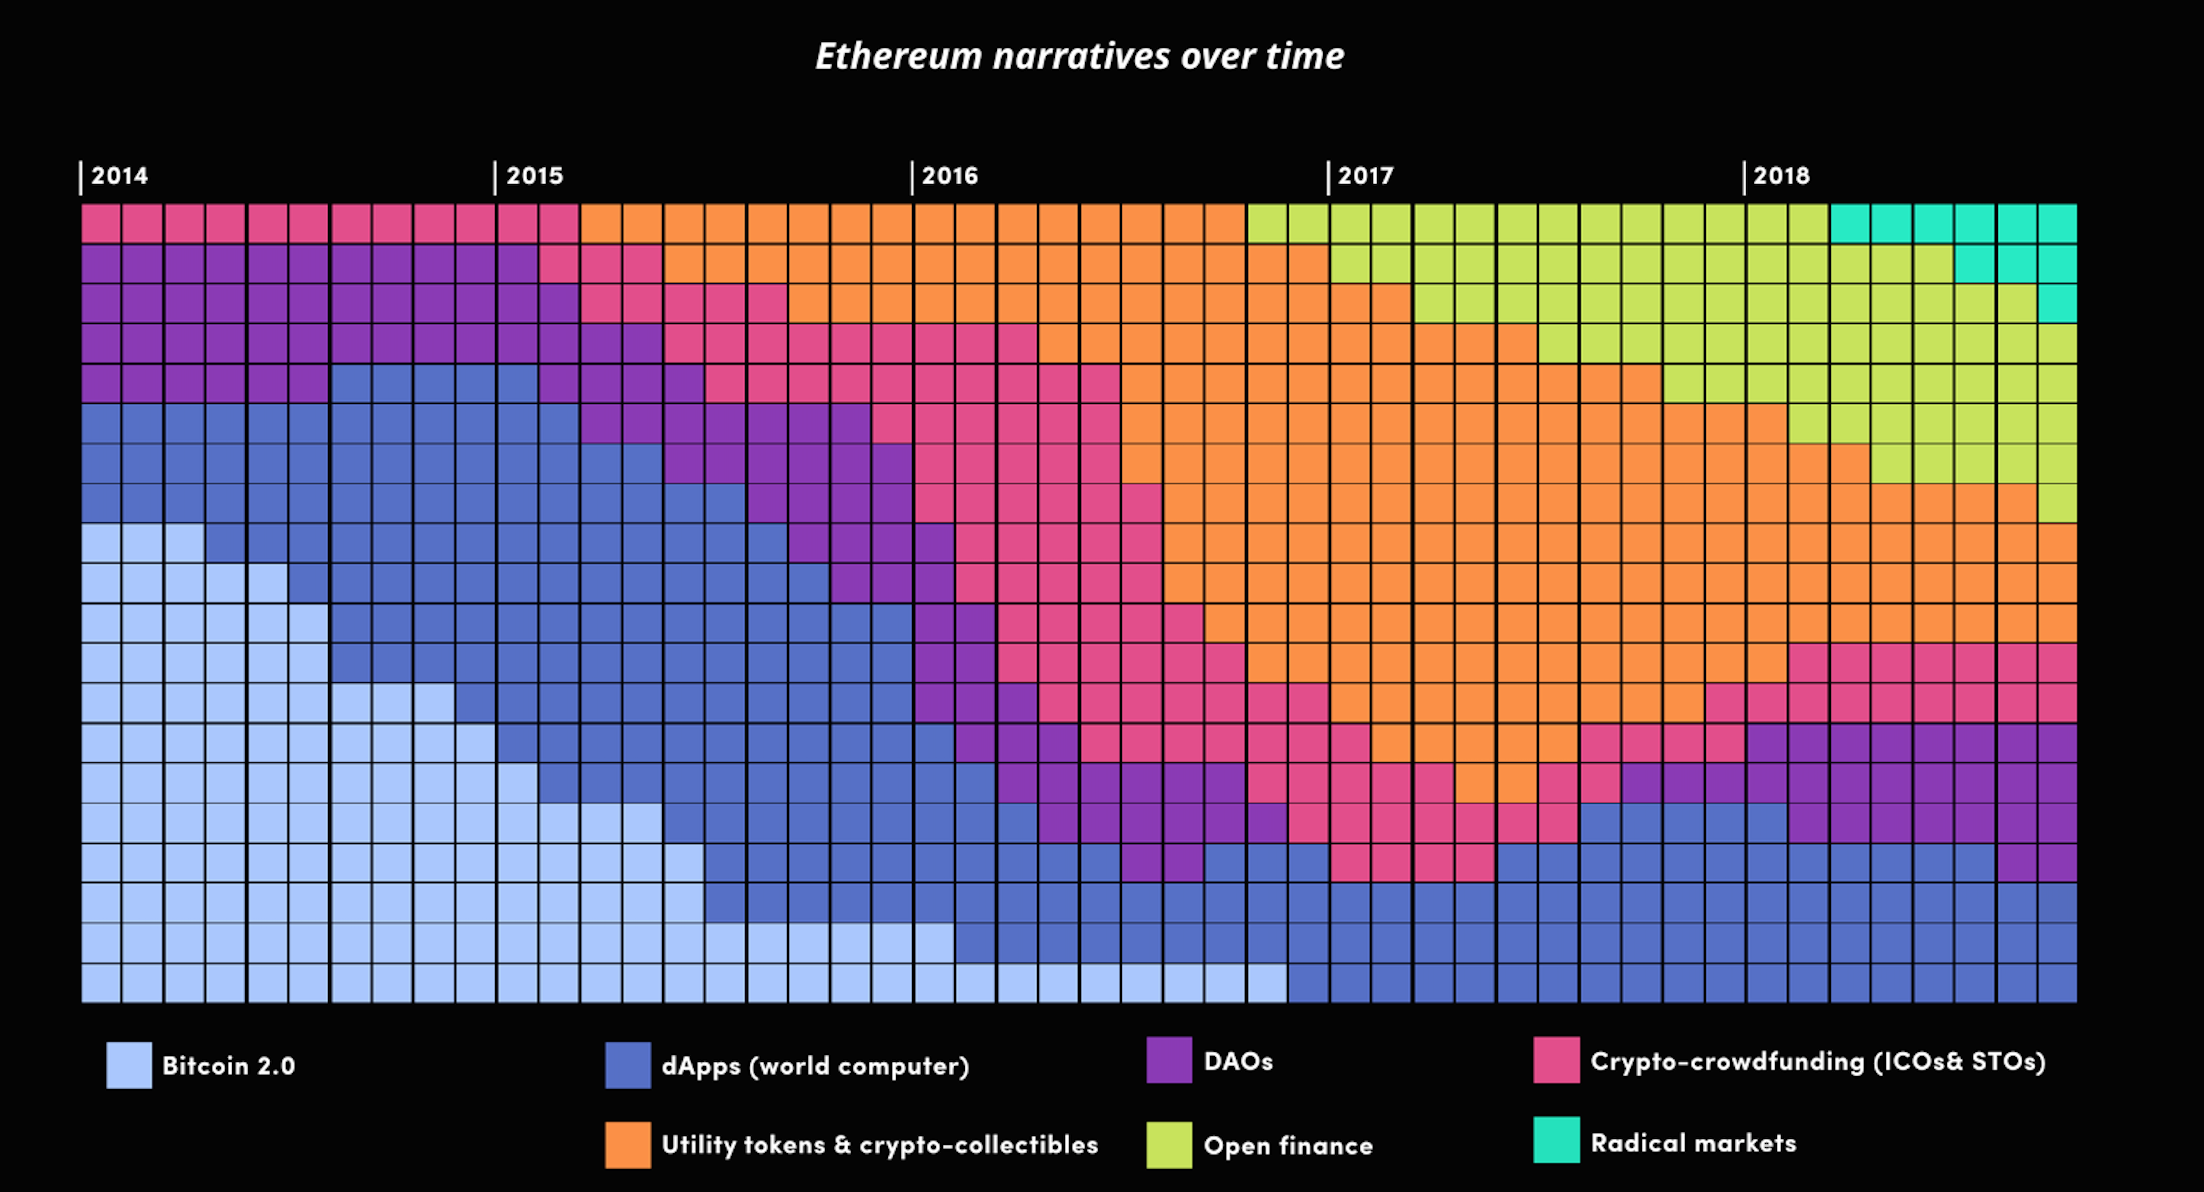 ⟠ Visions of Ether - How major narratives of Ethereum and $ETH have evolved over time.